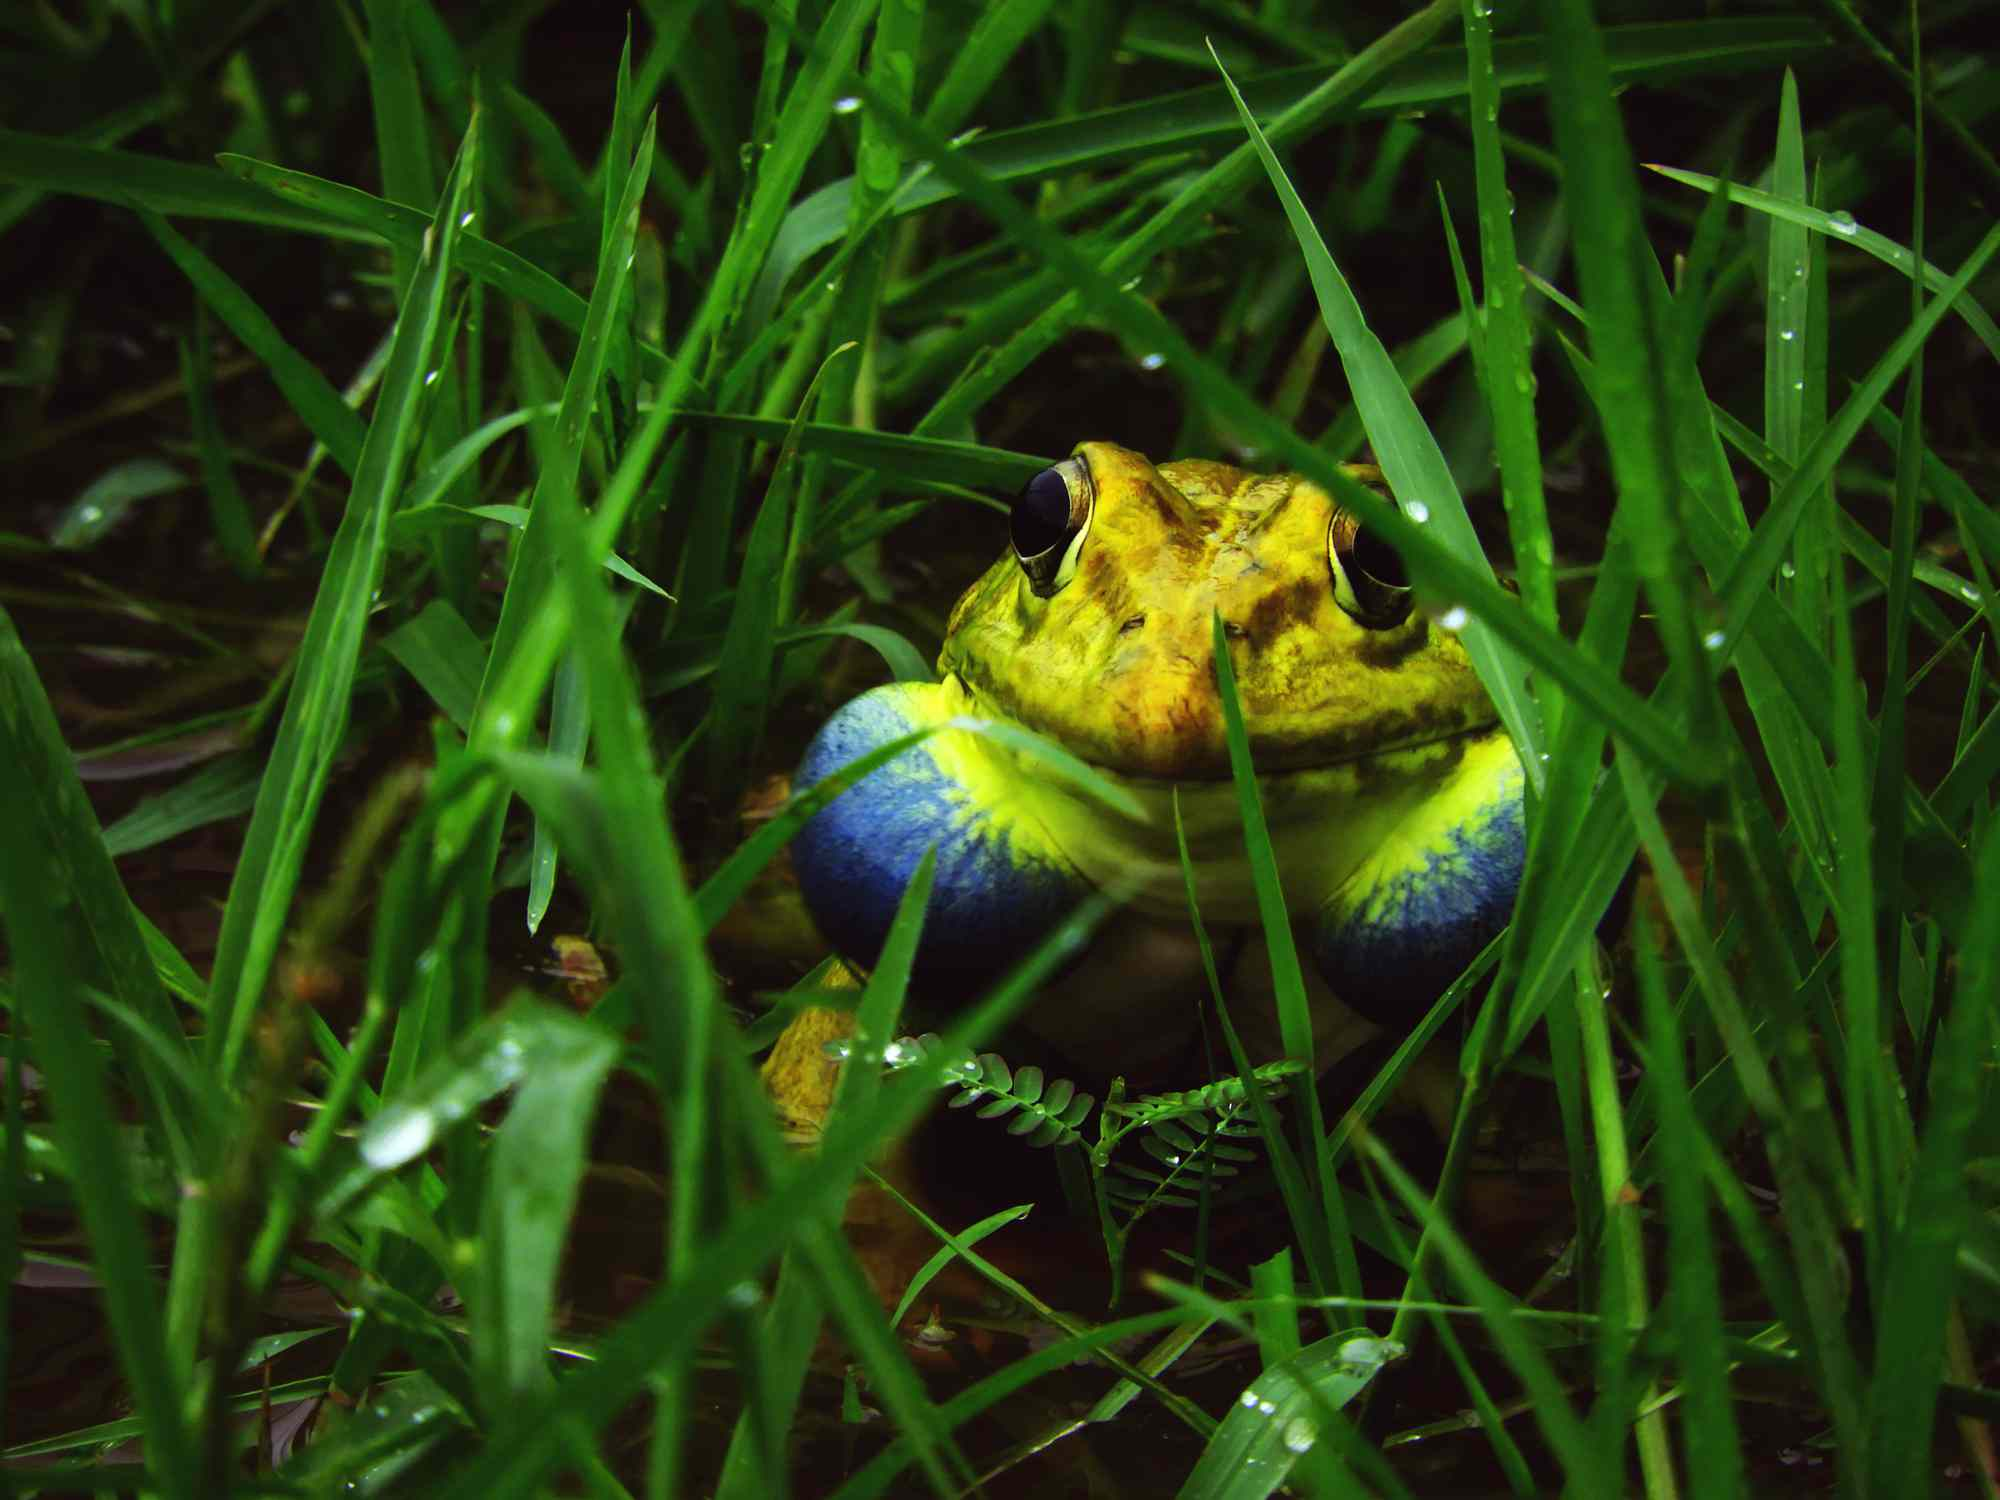 A yellow bullfrog with blue vocal sacs sits in the grass